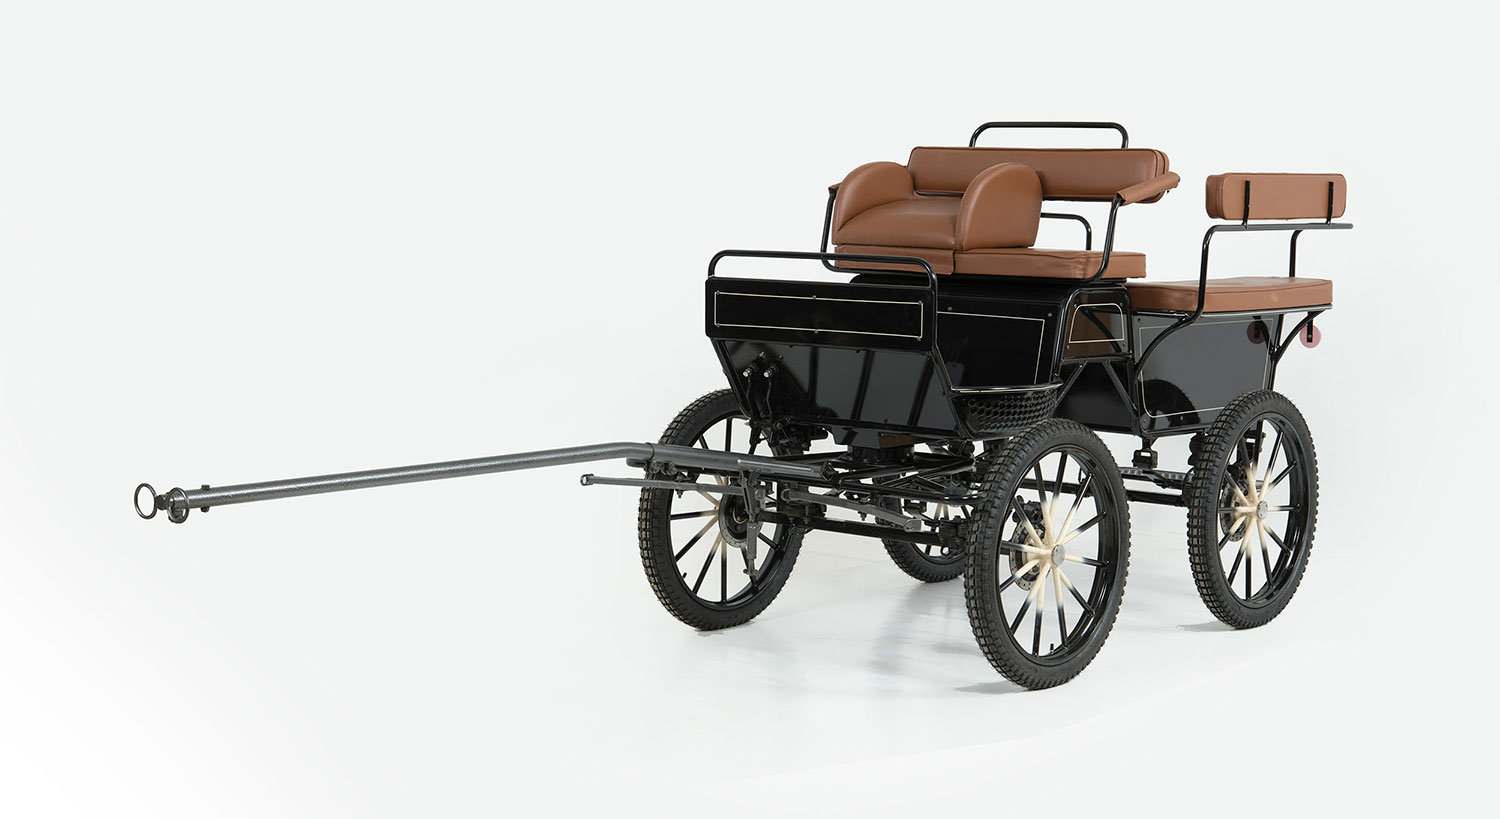 The Singletree Horse Carriage